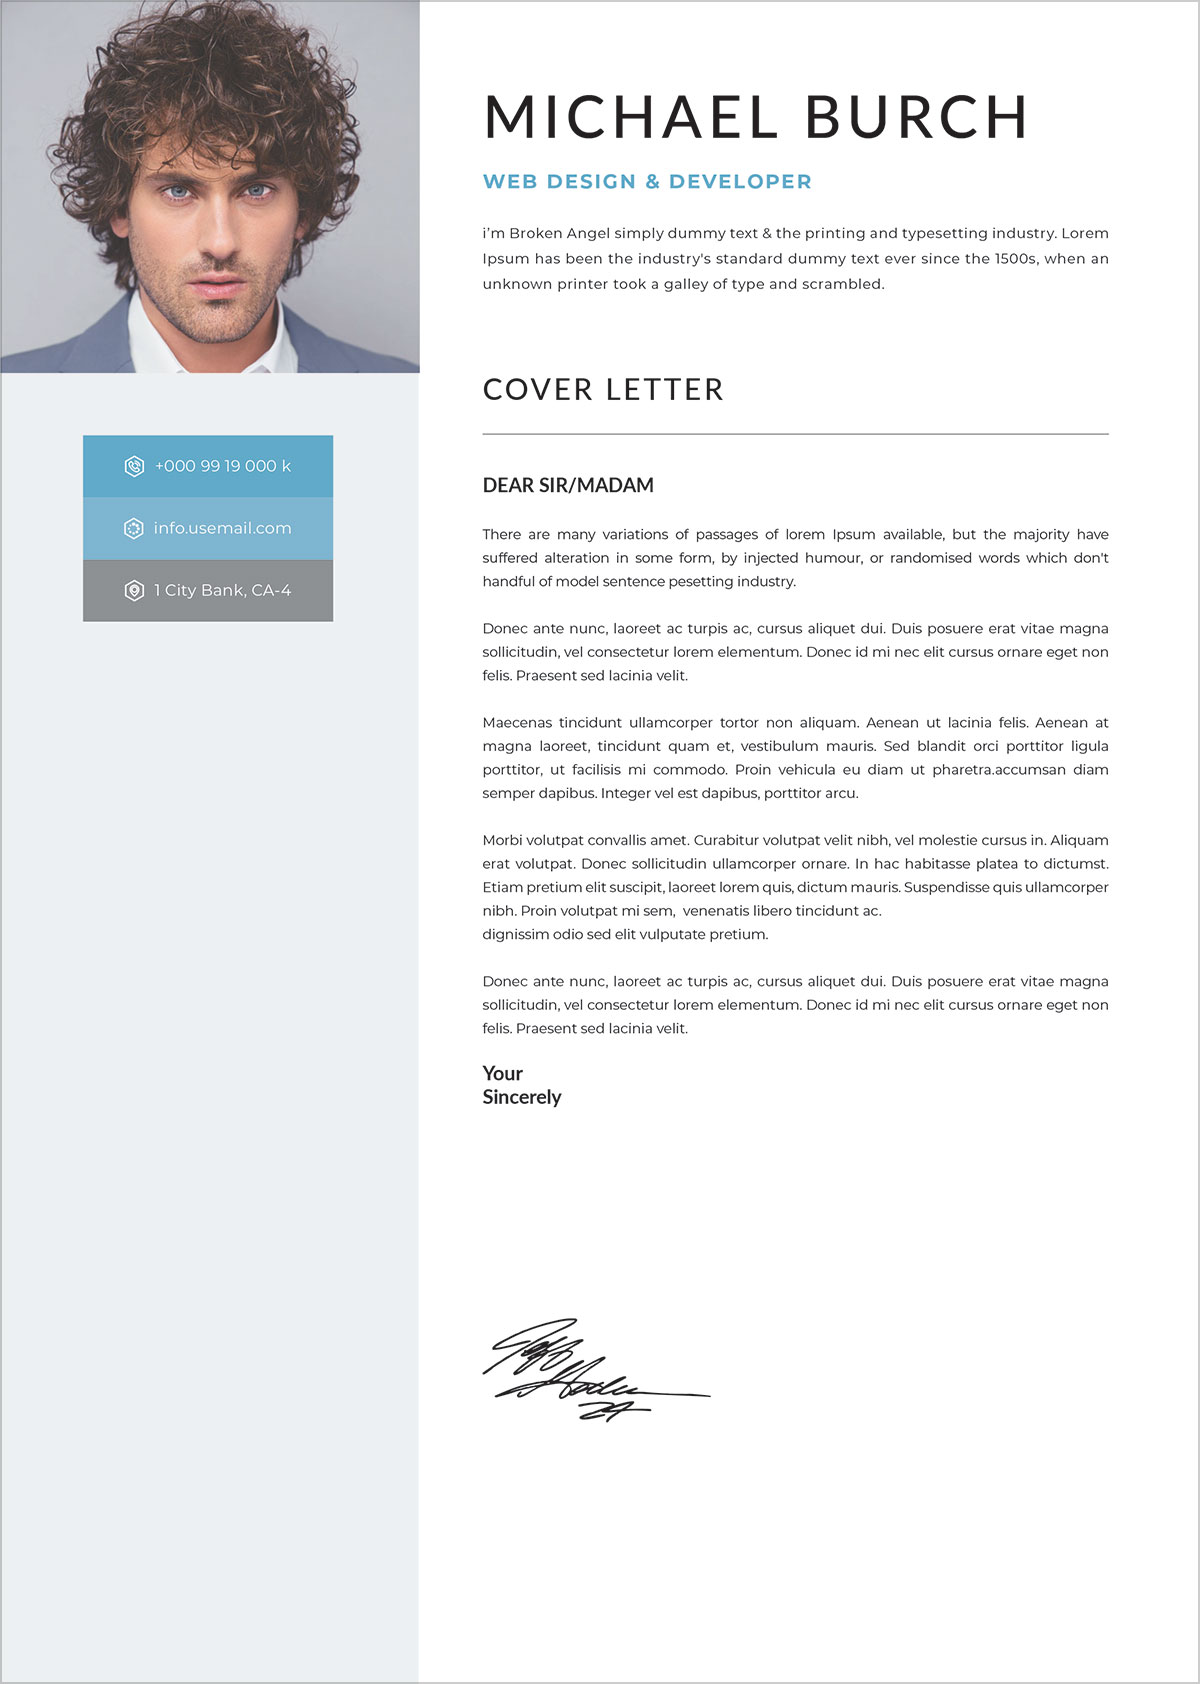 Free-Professional-Resume-Template-in-DOC-PSD-&-Ai-Format- (4)